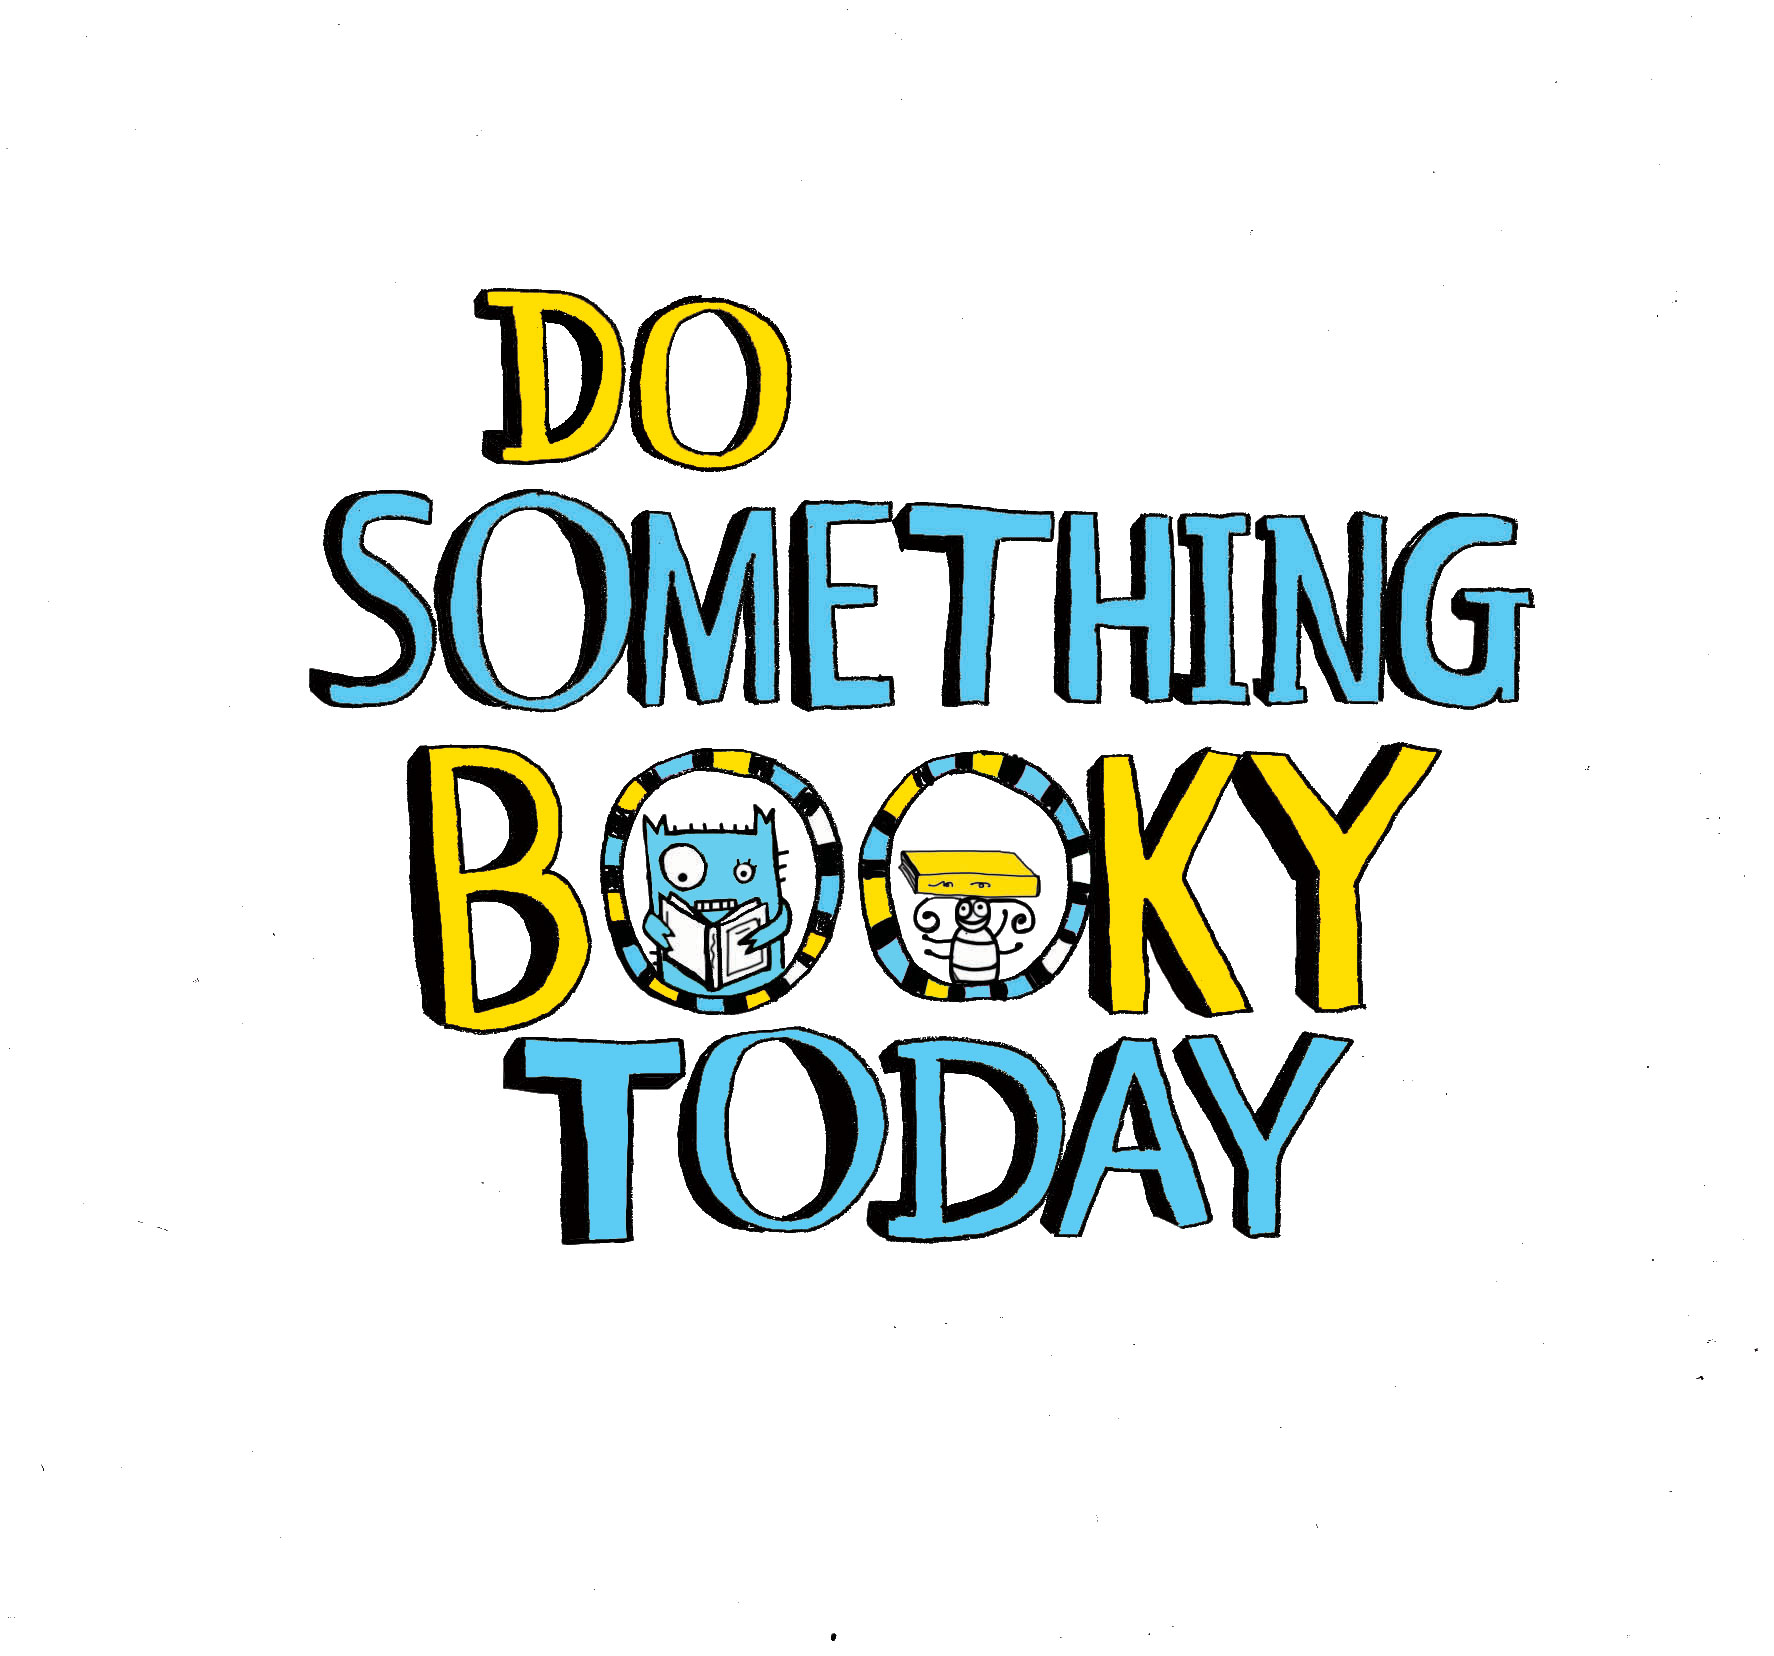 Doing Something Booky for World Book Day